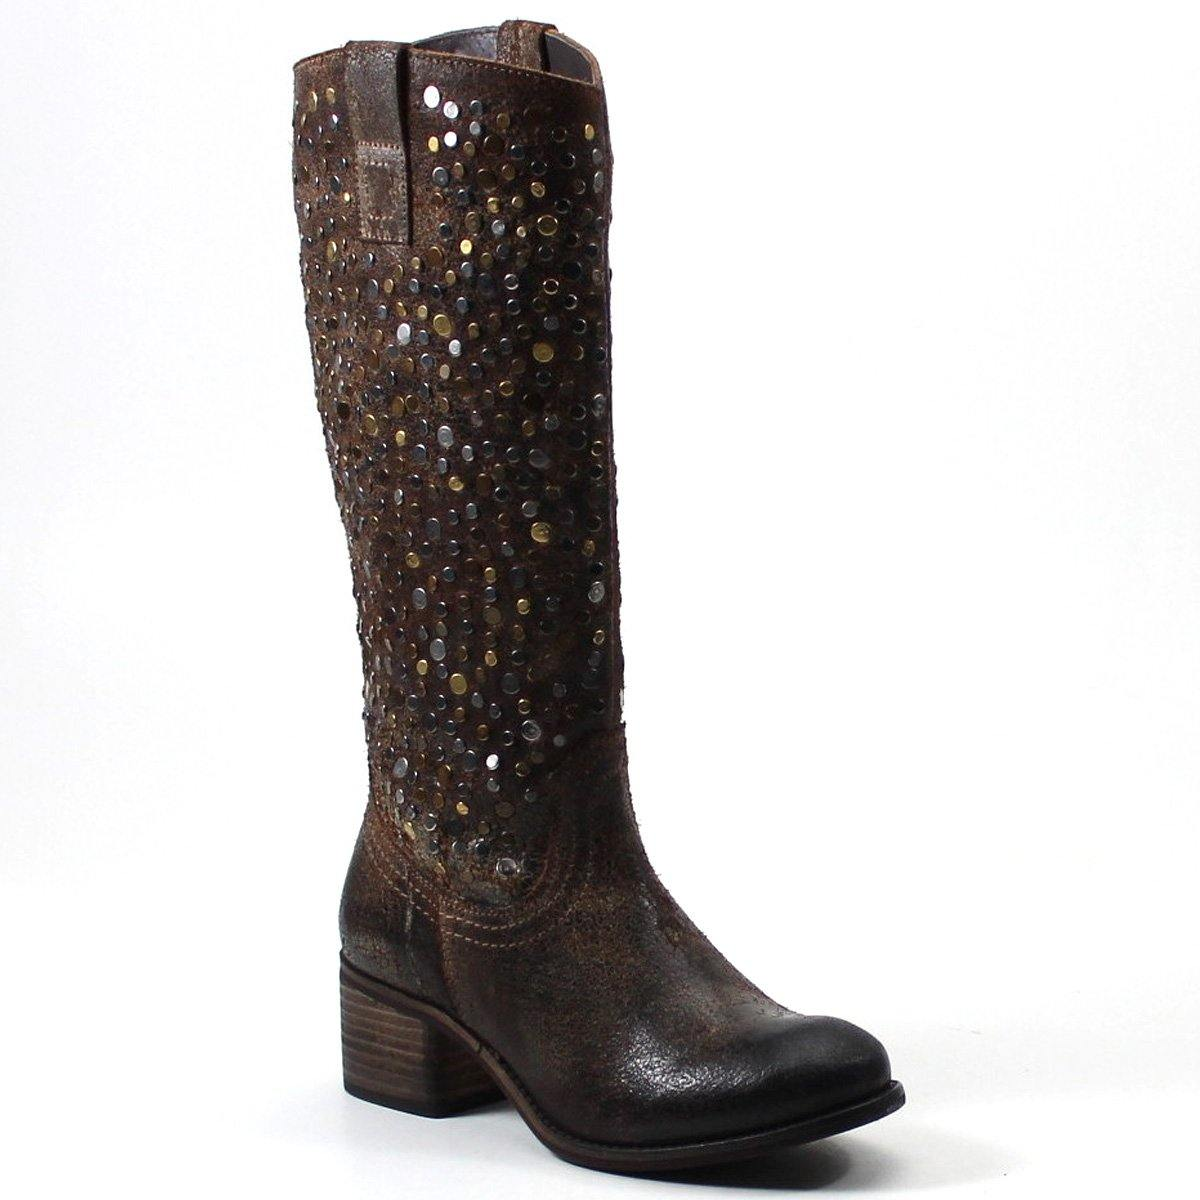 A tall shaft, studded detailing on the upper, and quick side pull tabs, these boots make an edgy fashion statement.